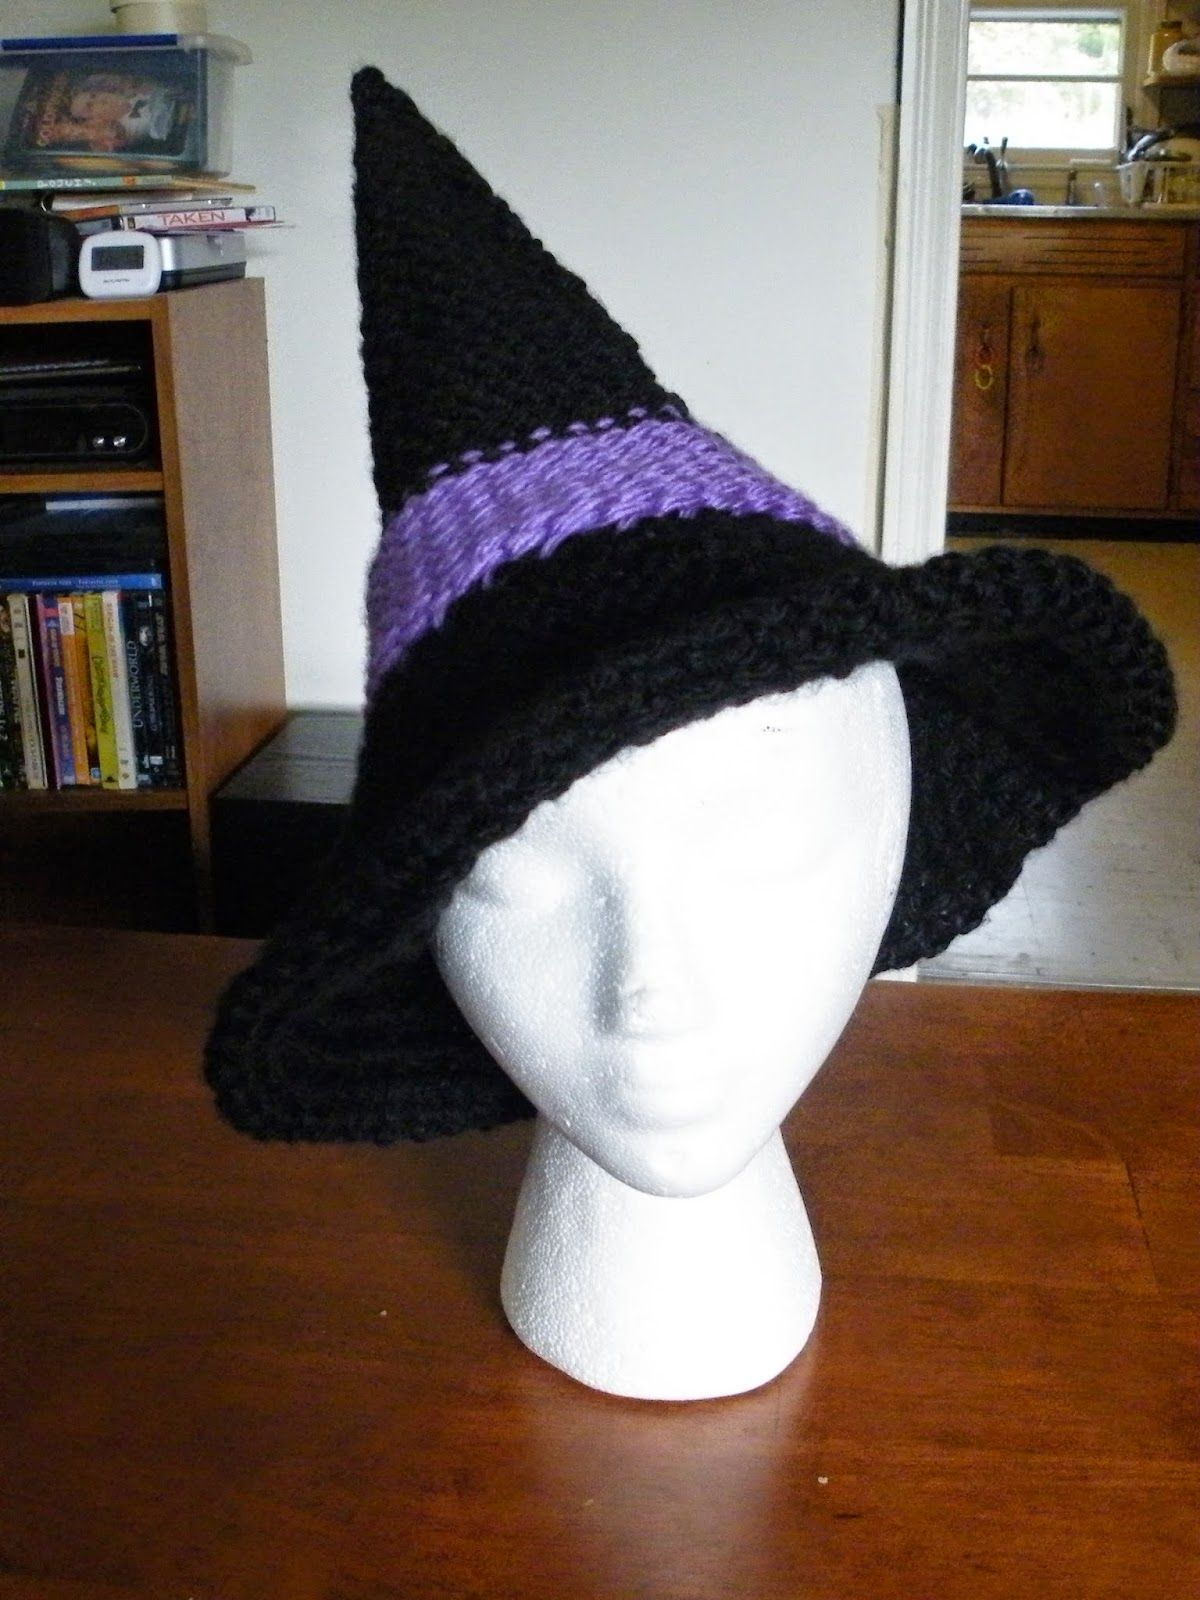 The Loom Muse Creations and Ideas: How to Loom Knit a Witches or ...